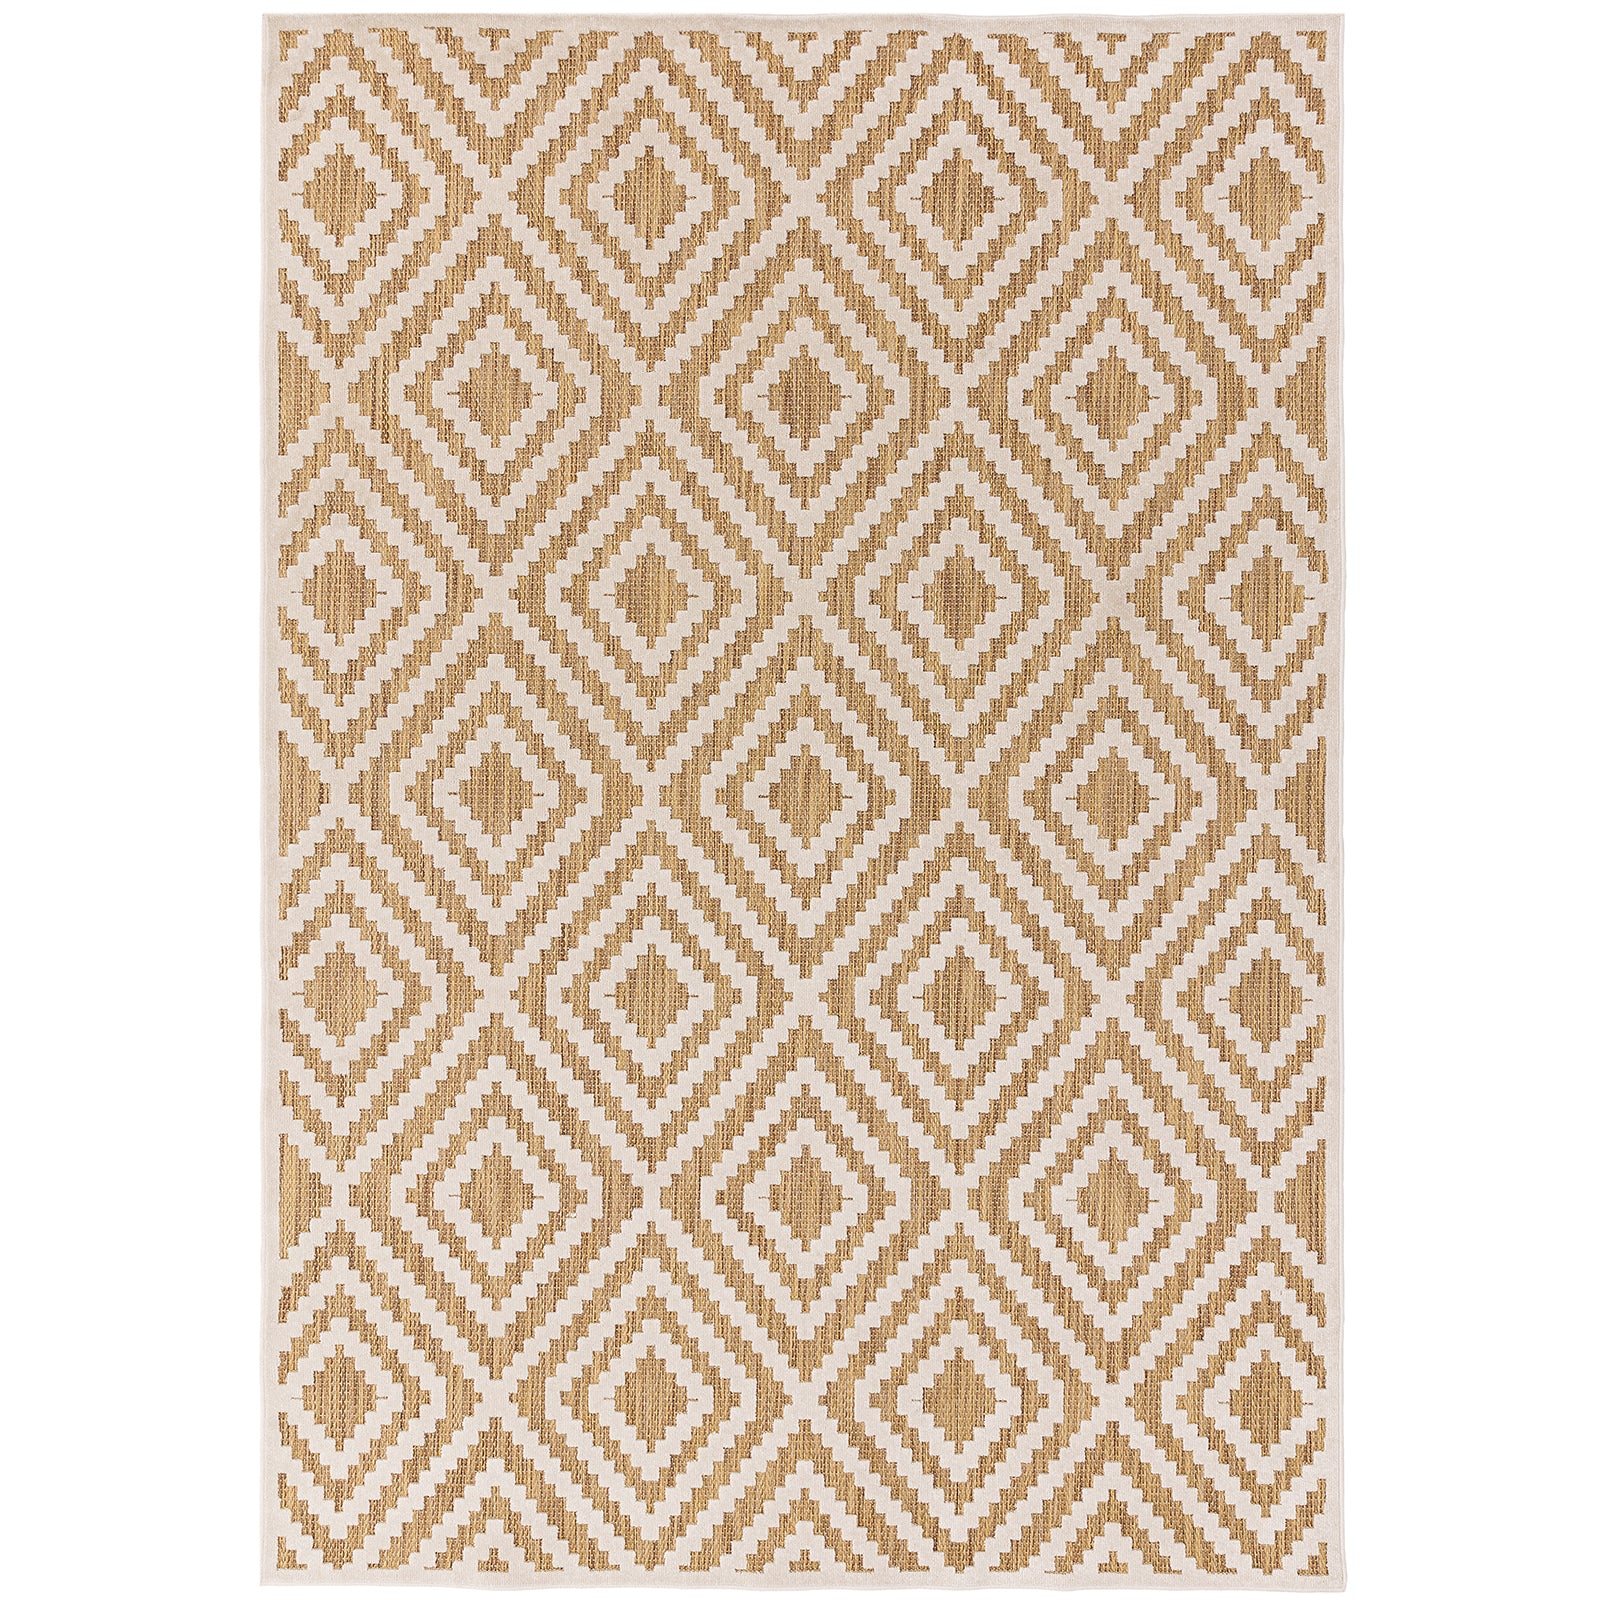 Plaza Ivory Outdoor Rug